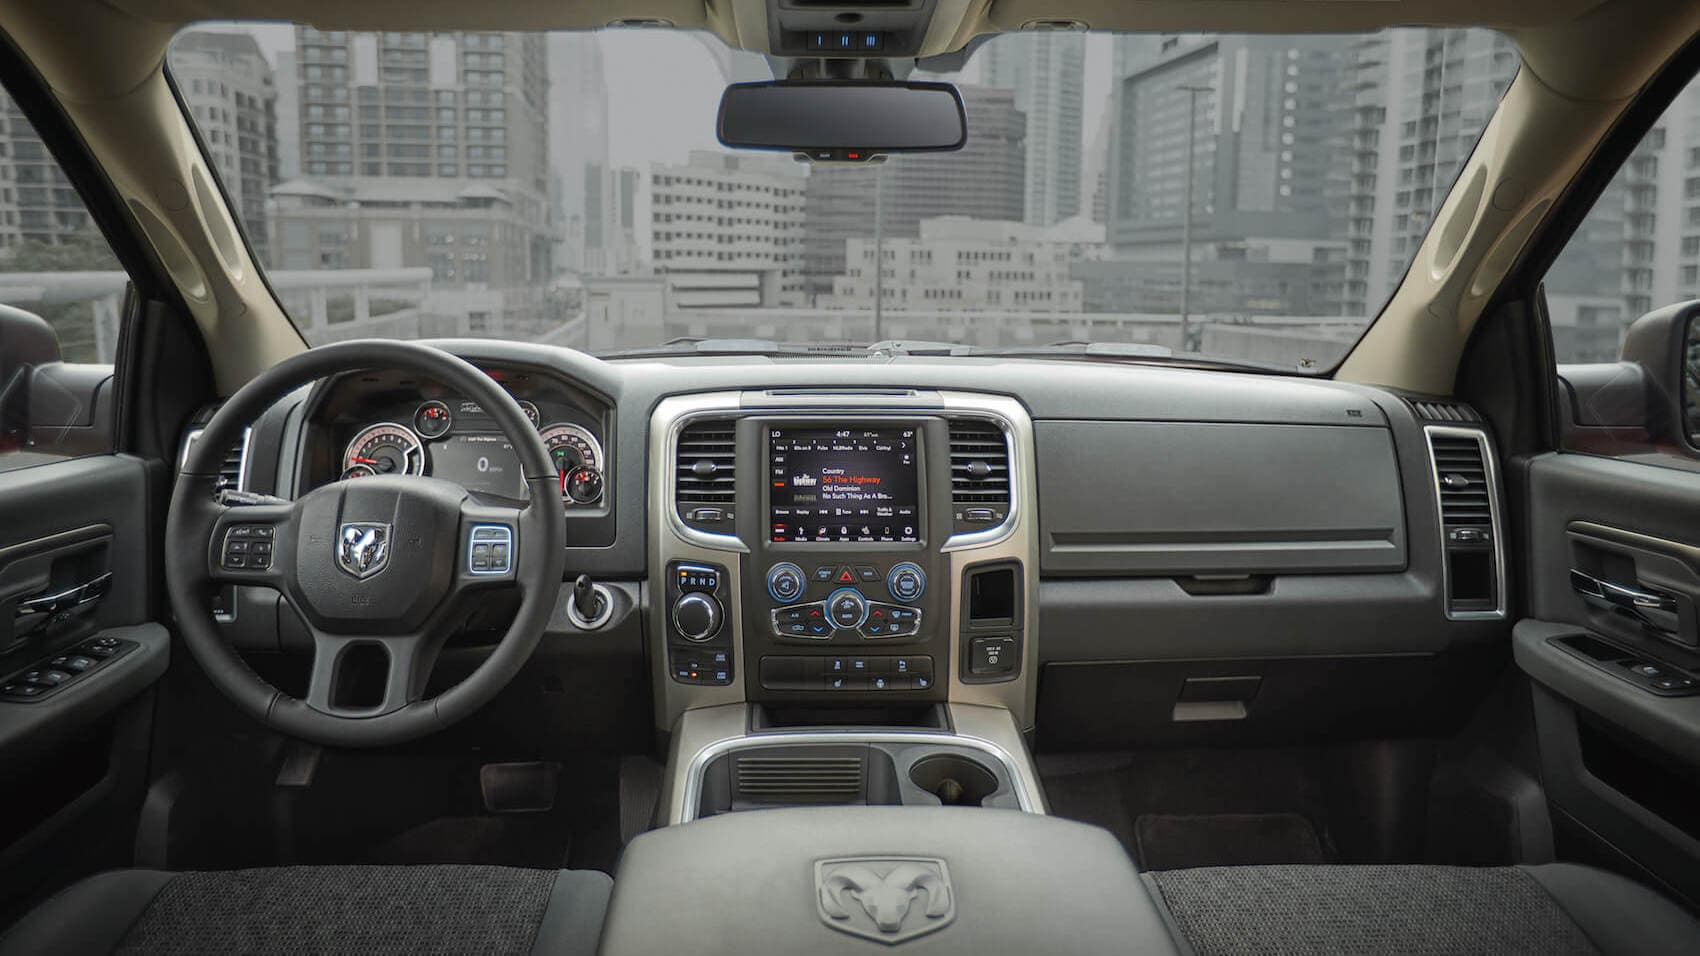 2020 Ram 1500 interior technology Worcester, MA